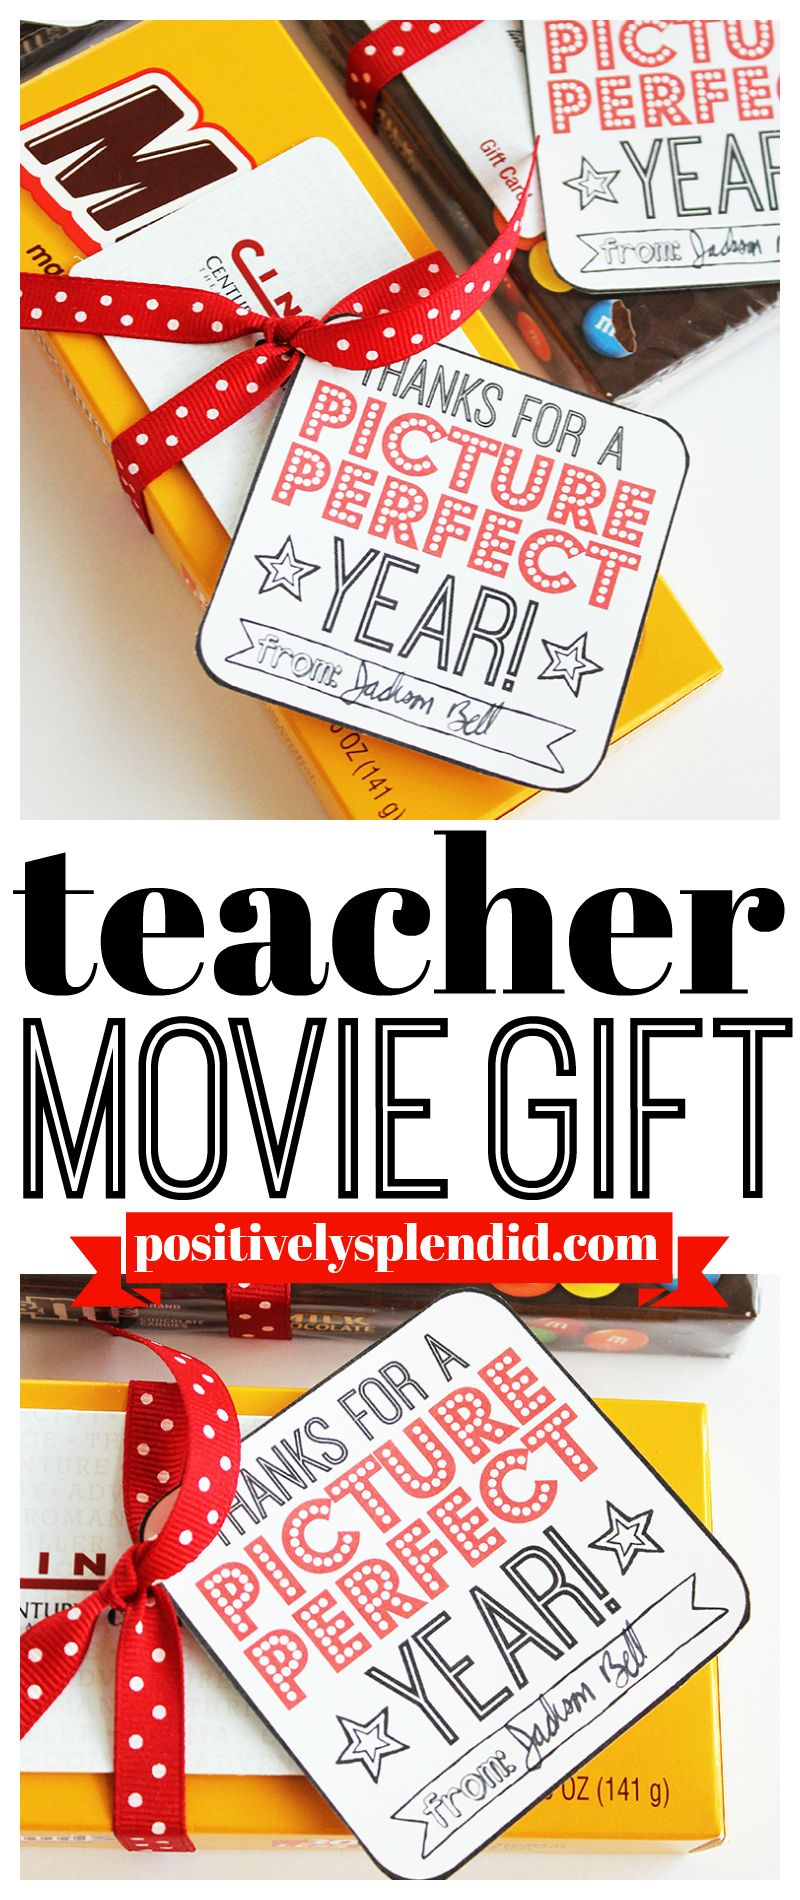 Movie Gift Card Teacher Gifts with Free Printable Tags #teachergifts